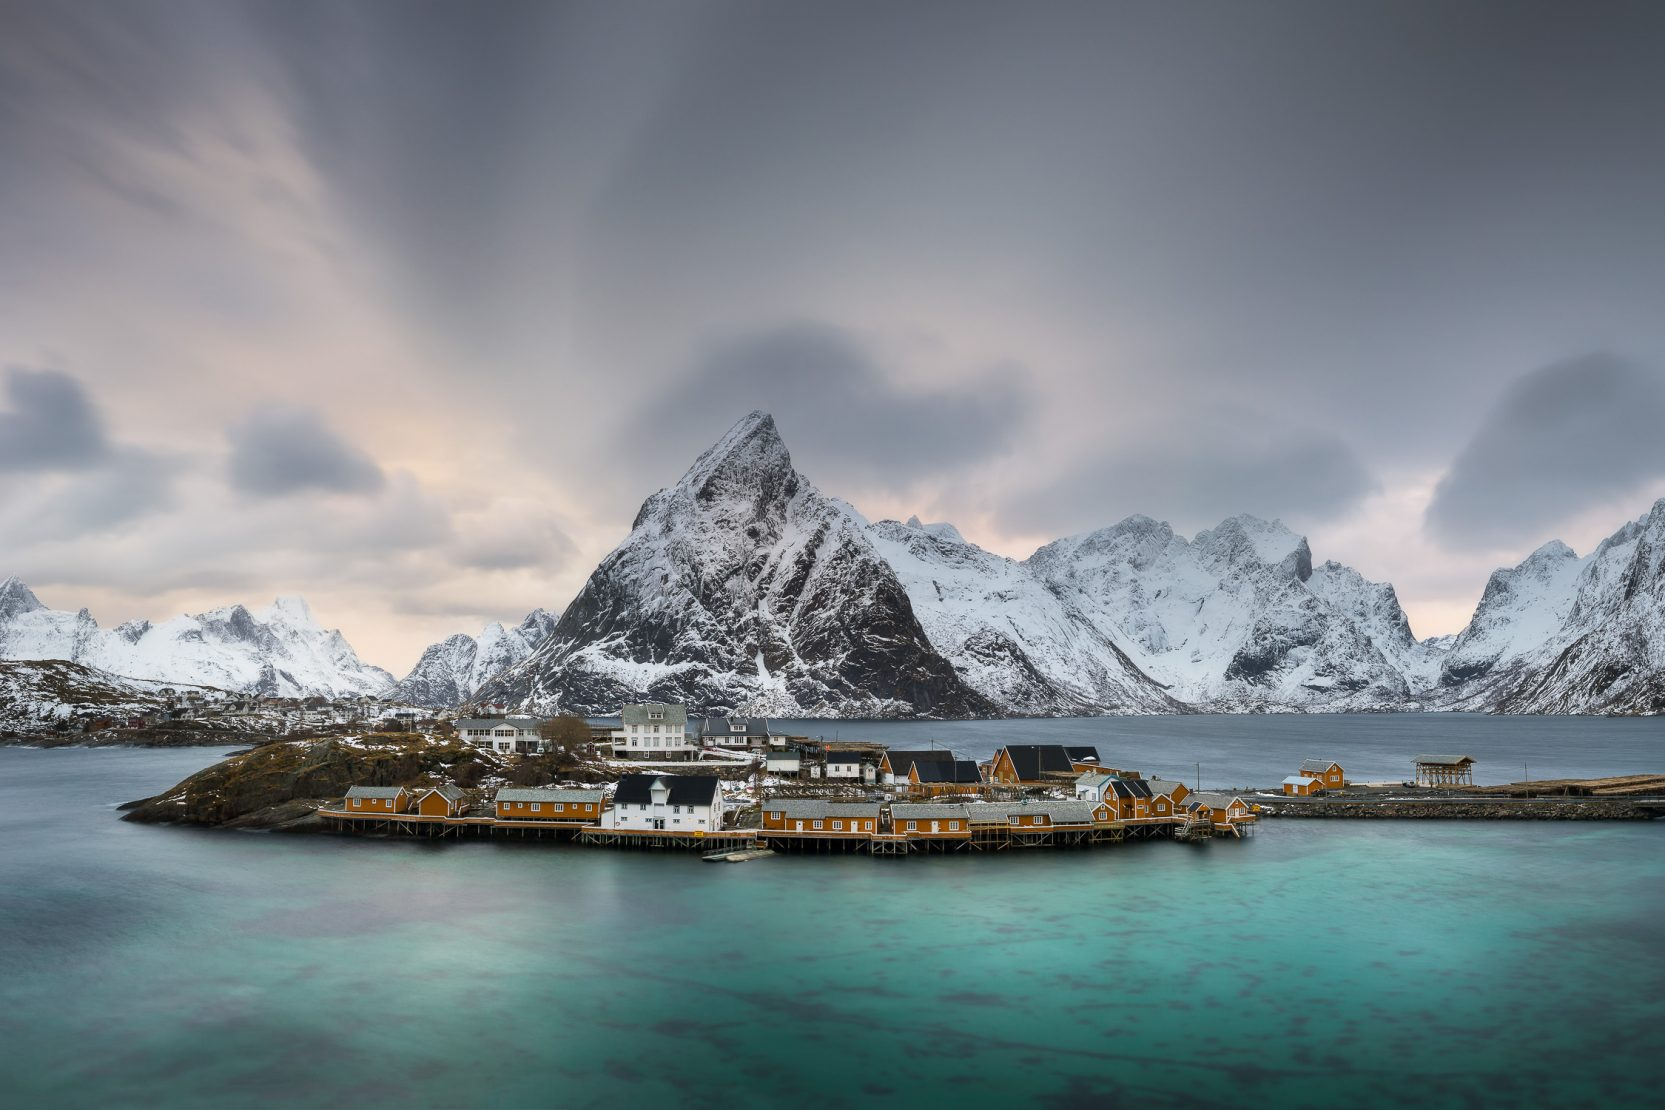 Jagged snow capped mountains rise behind the turquoise sea and picturesque fishing village of Sakrisoy in the Lofoten Islands of Norway